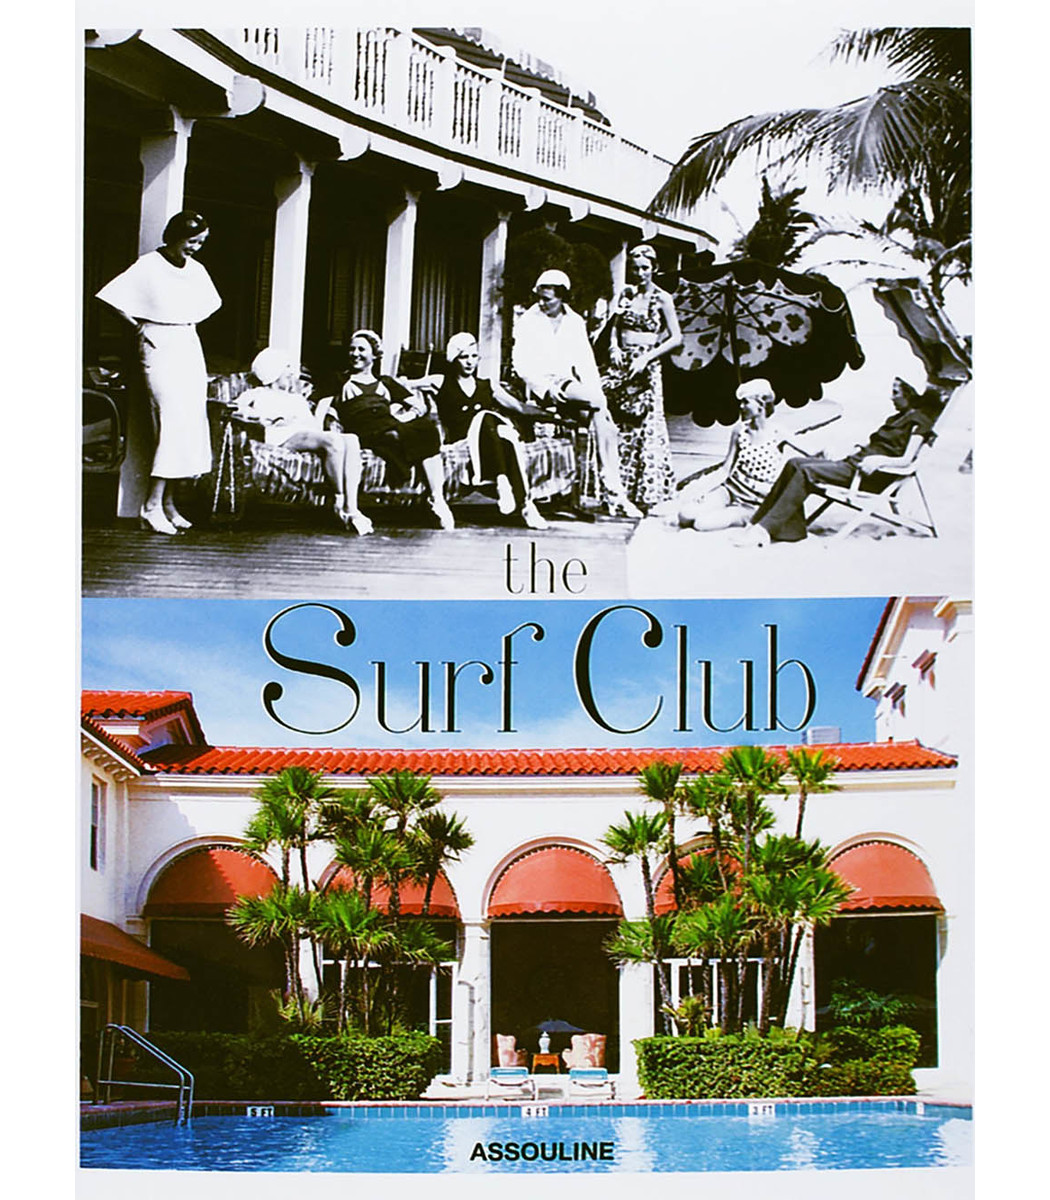 ASSOULINE The Surf Club in N/A